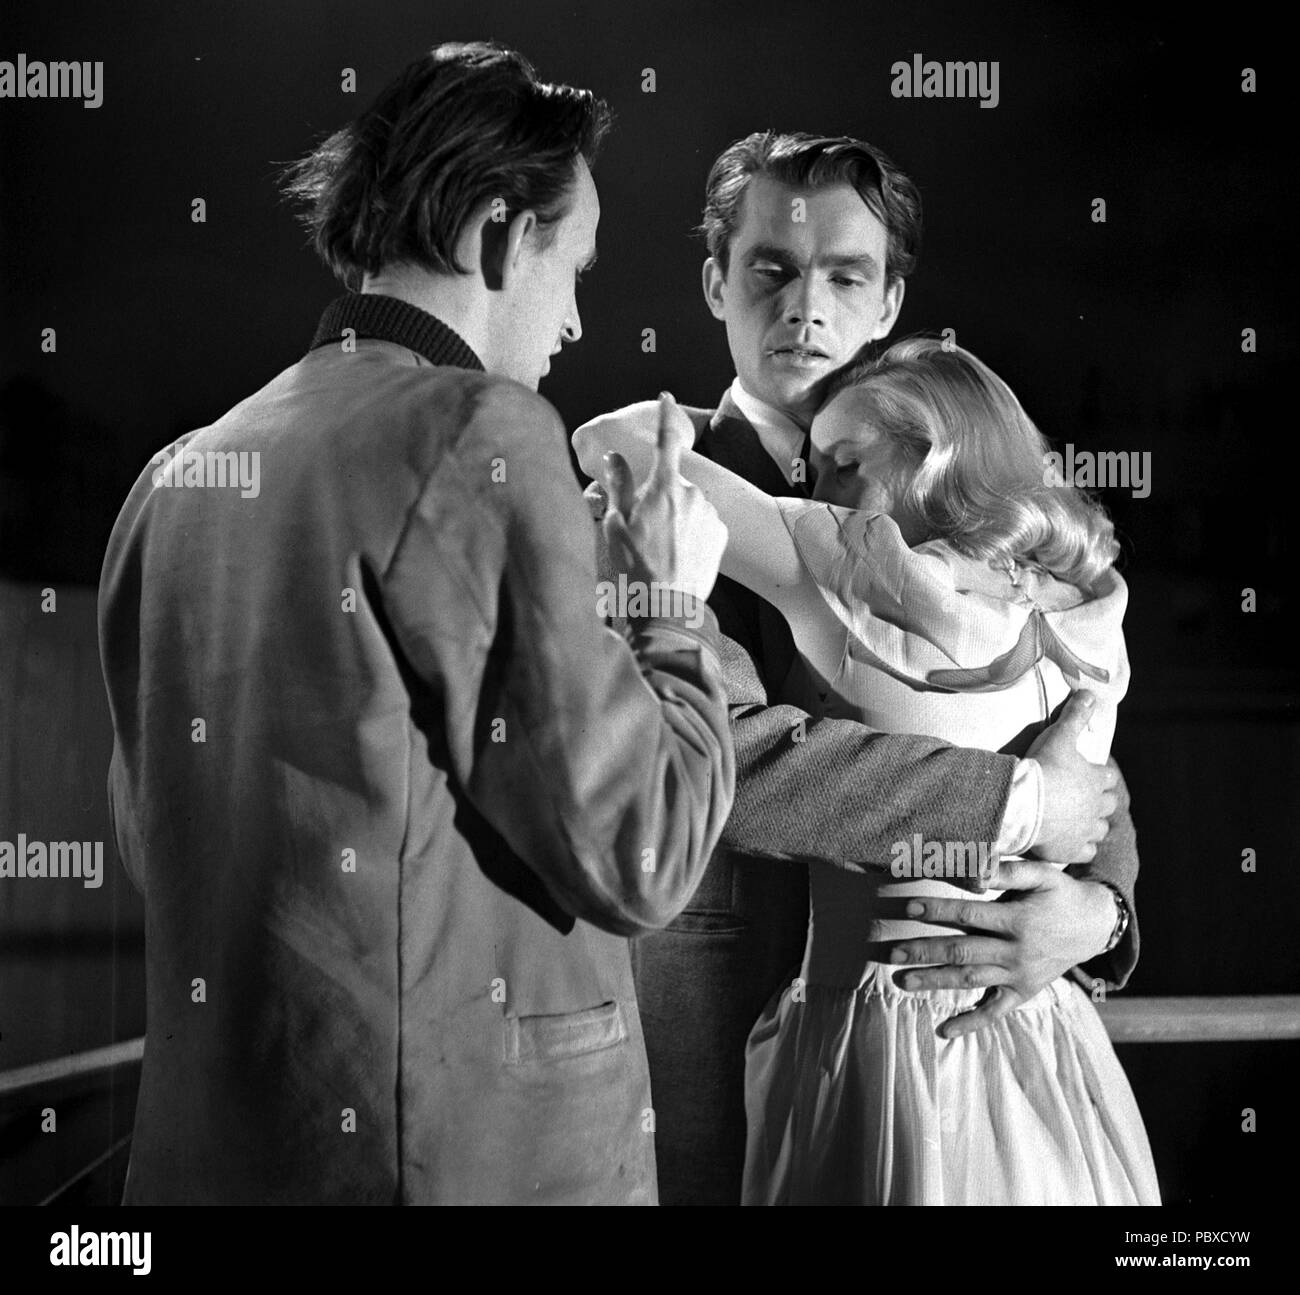 Ingmar Bergman. 1918-2007.  Swedish film director. Pictured here 1948 on the film set of the movie Night is my future directing actors Birger Malmsten and Mai Zetterling.  Photographer: Kristoffersson/AF19-4 - Stock Image